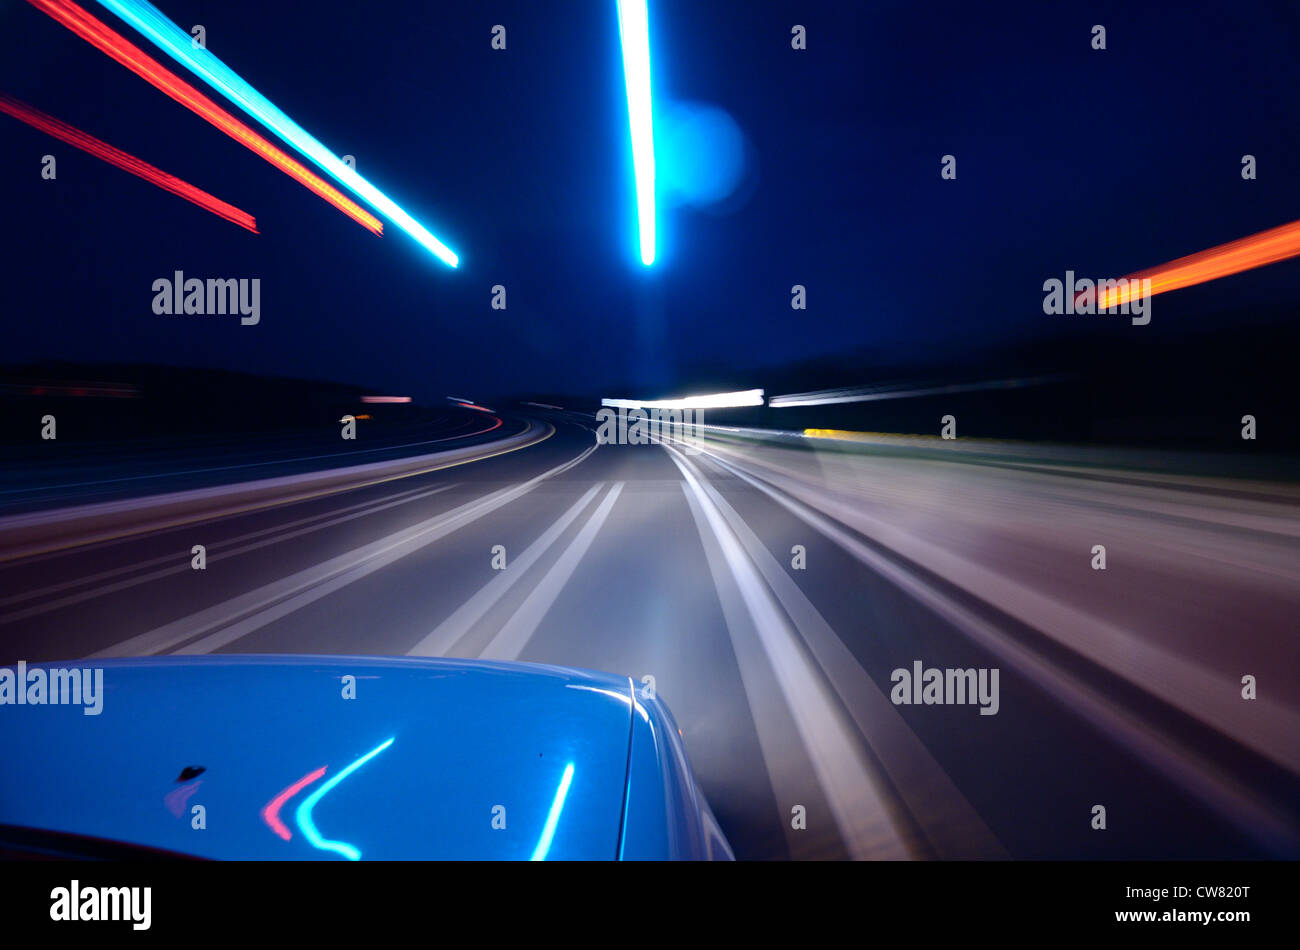 Motion blurred view of night driving - Stock Image